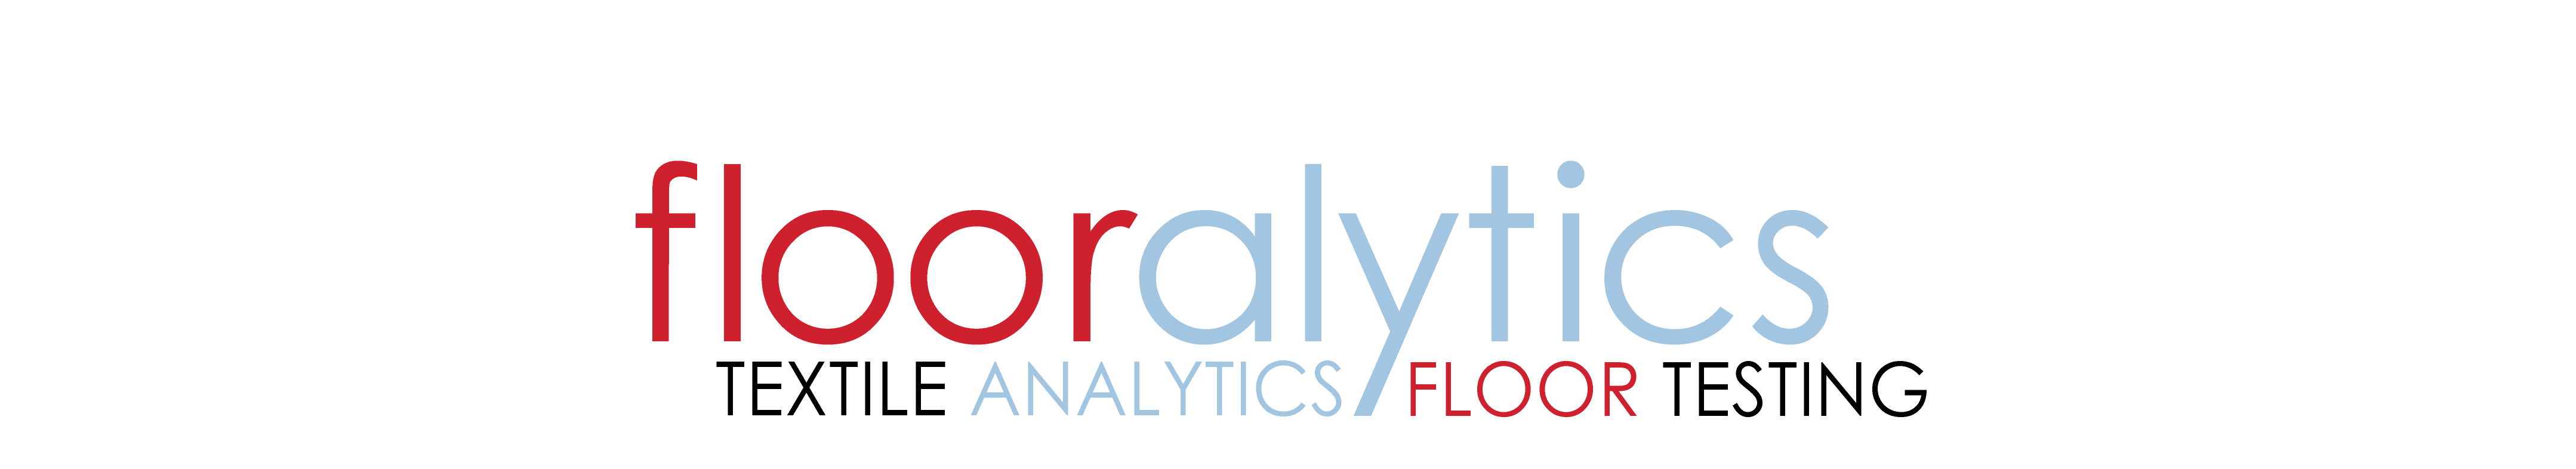 Flooralytics